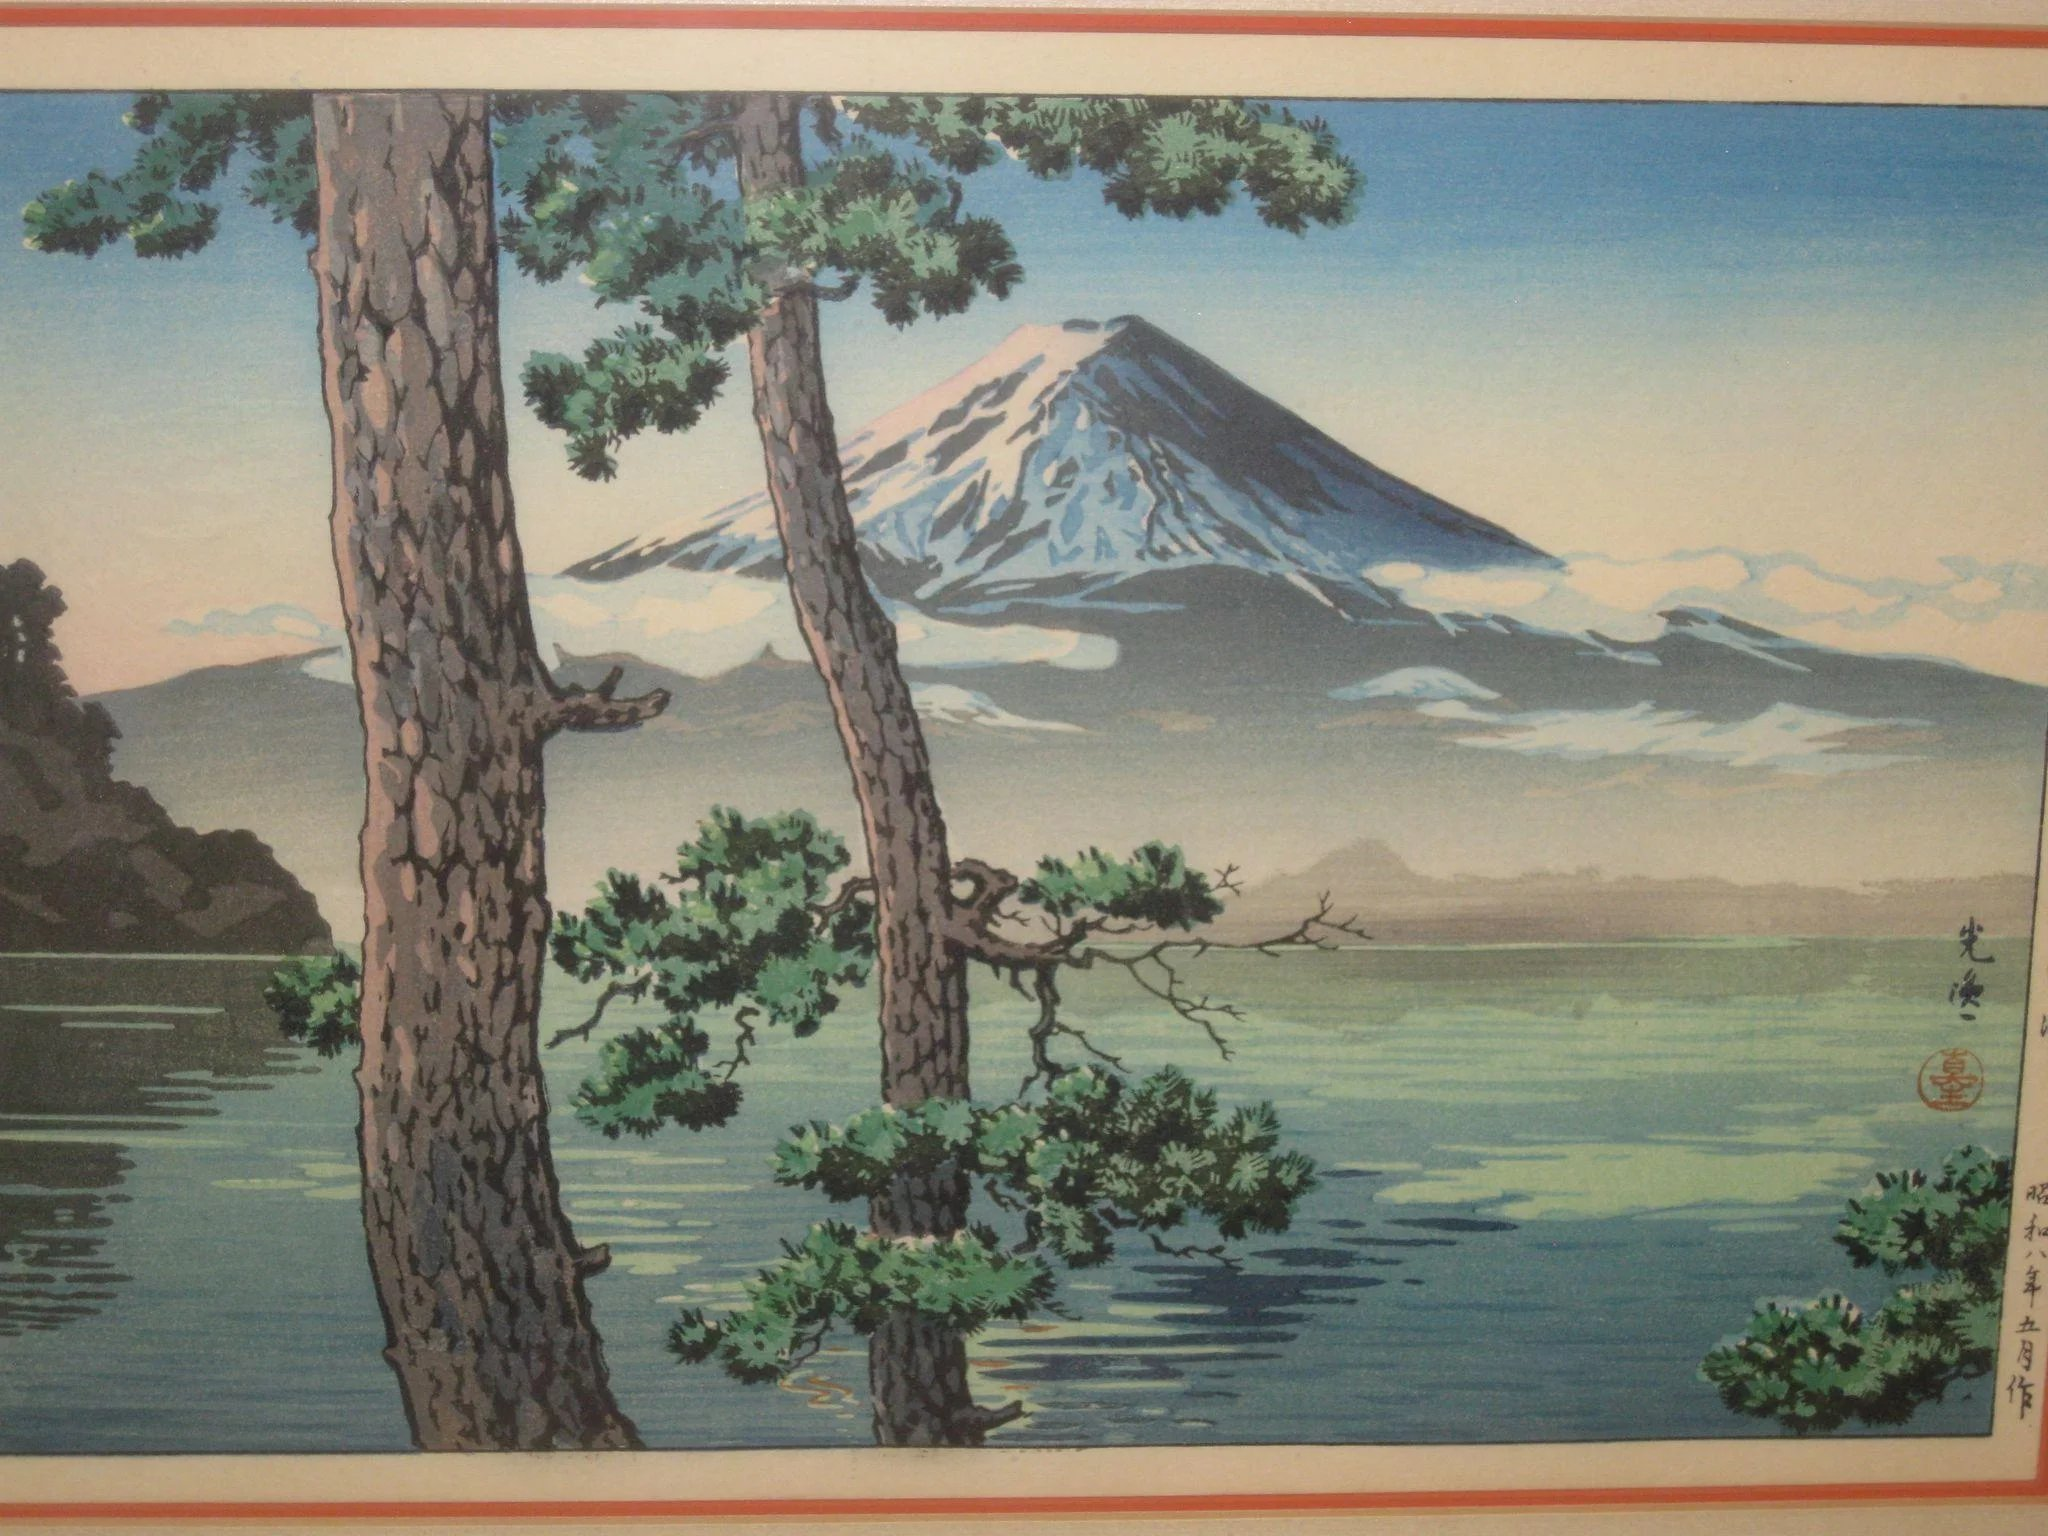 Vintage Japanese Woodblock Print with Mt. Fuji. Click to expand